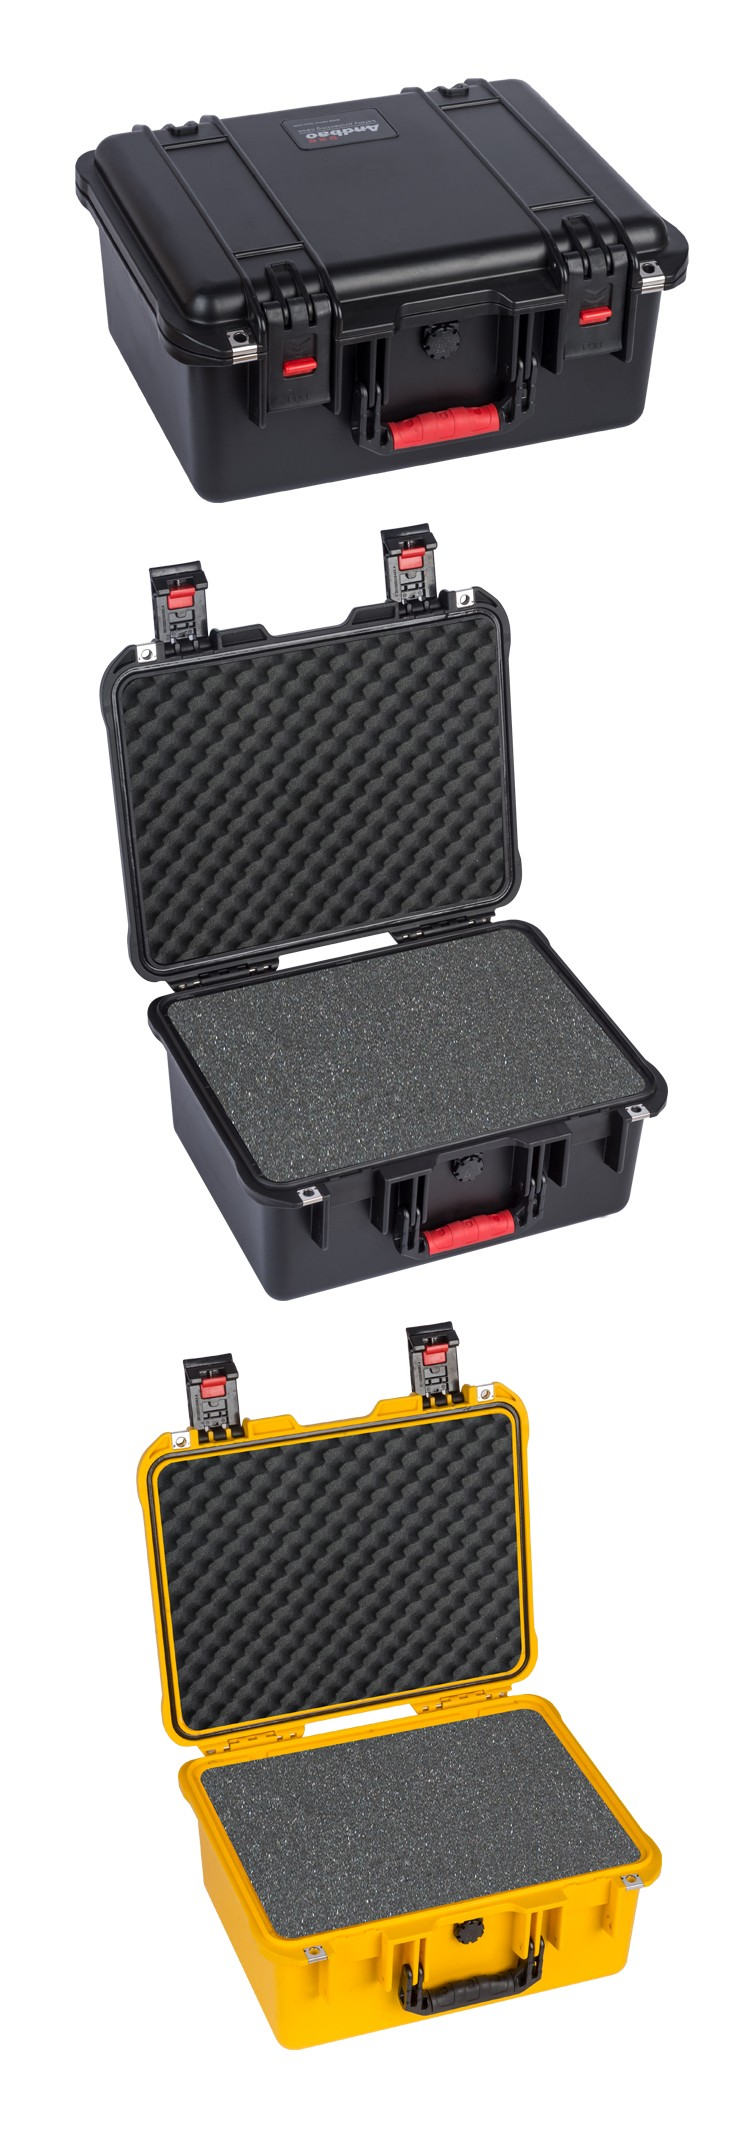 Watertight high quality abs equipment case